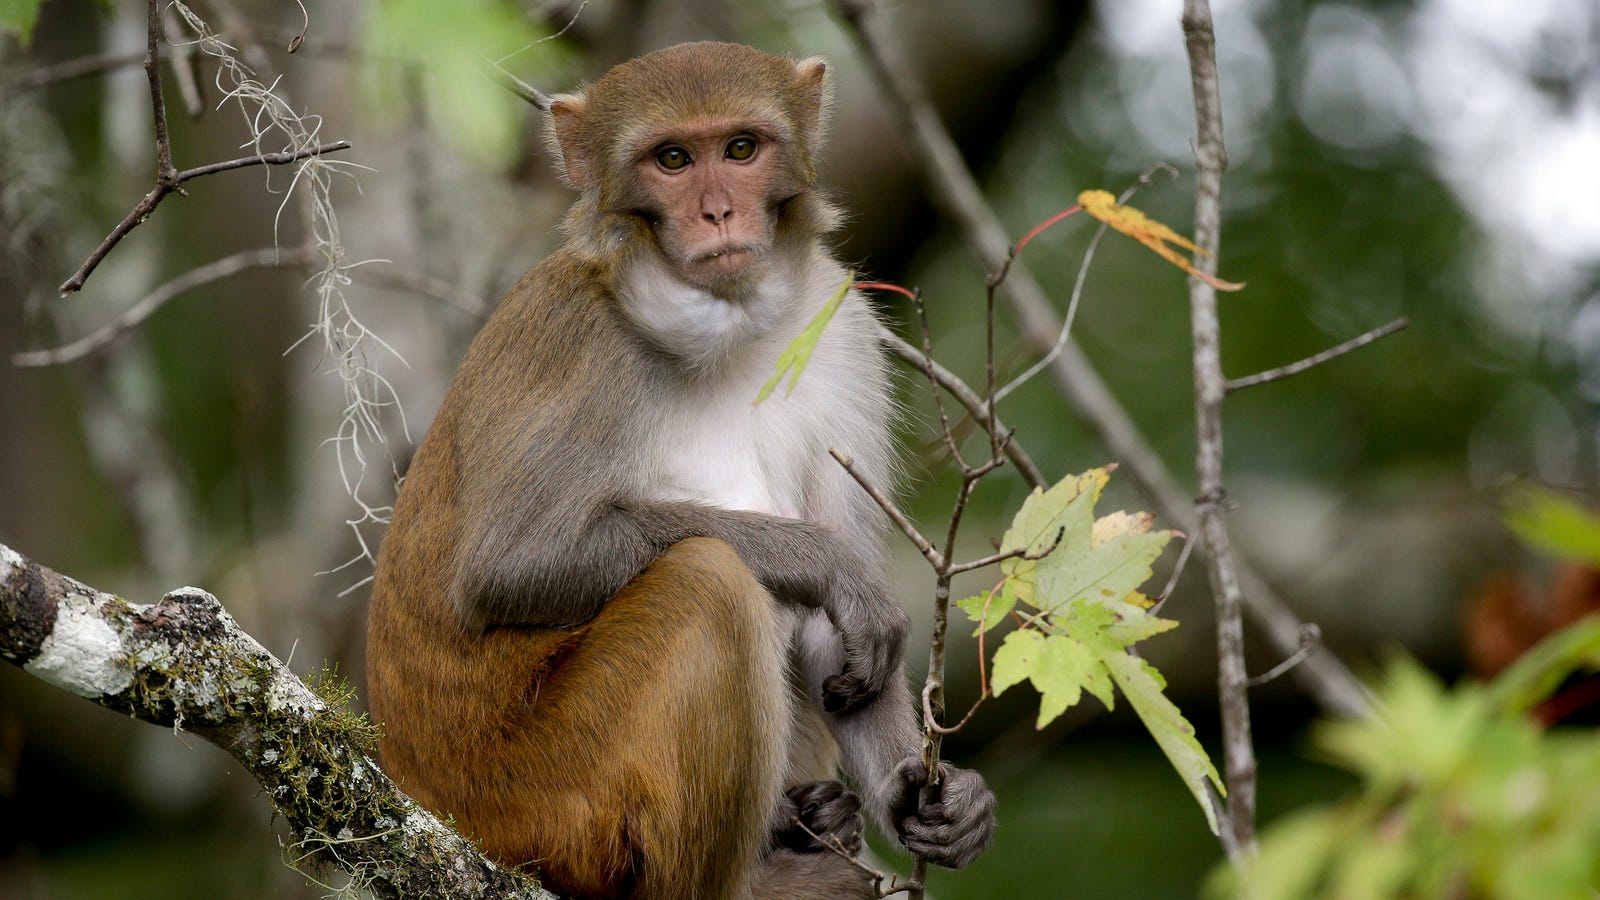 Avoid Monkeys in Florida Because They Could Give You Killer Herpes